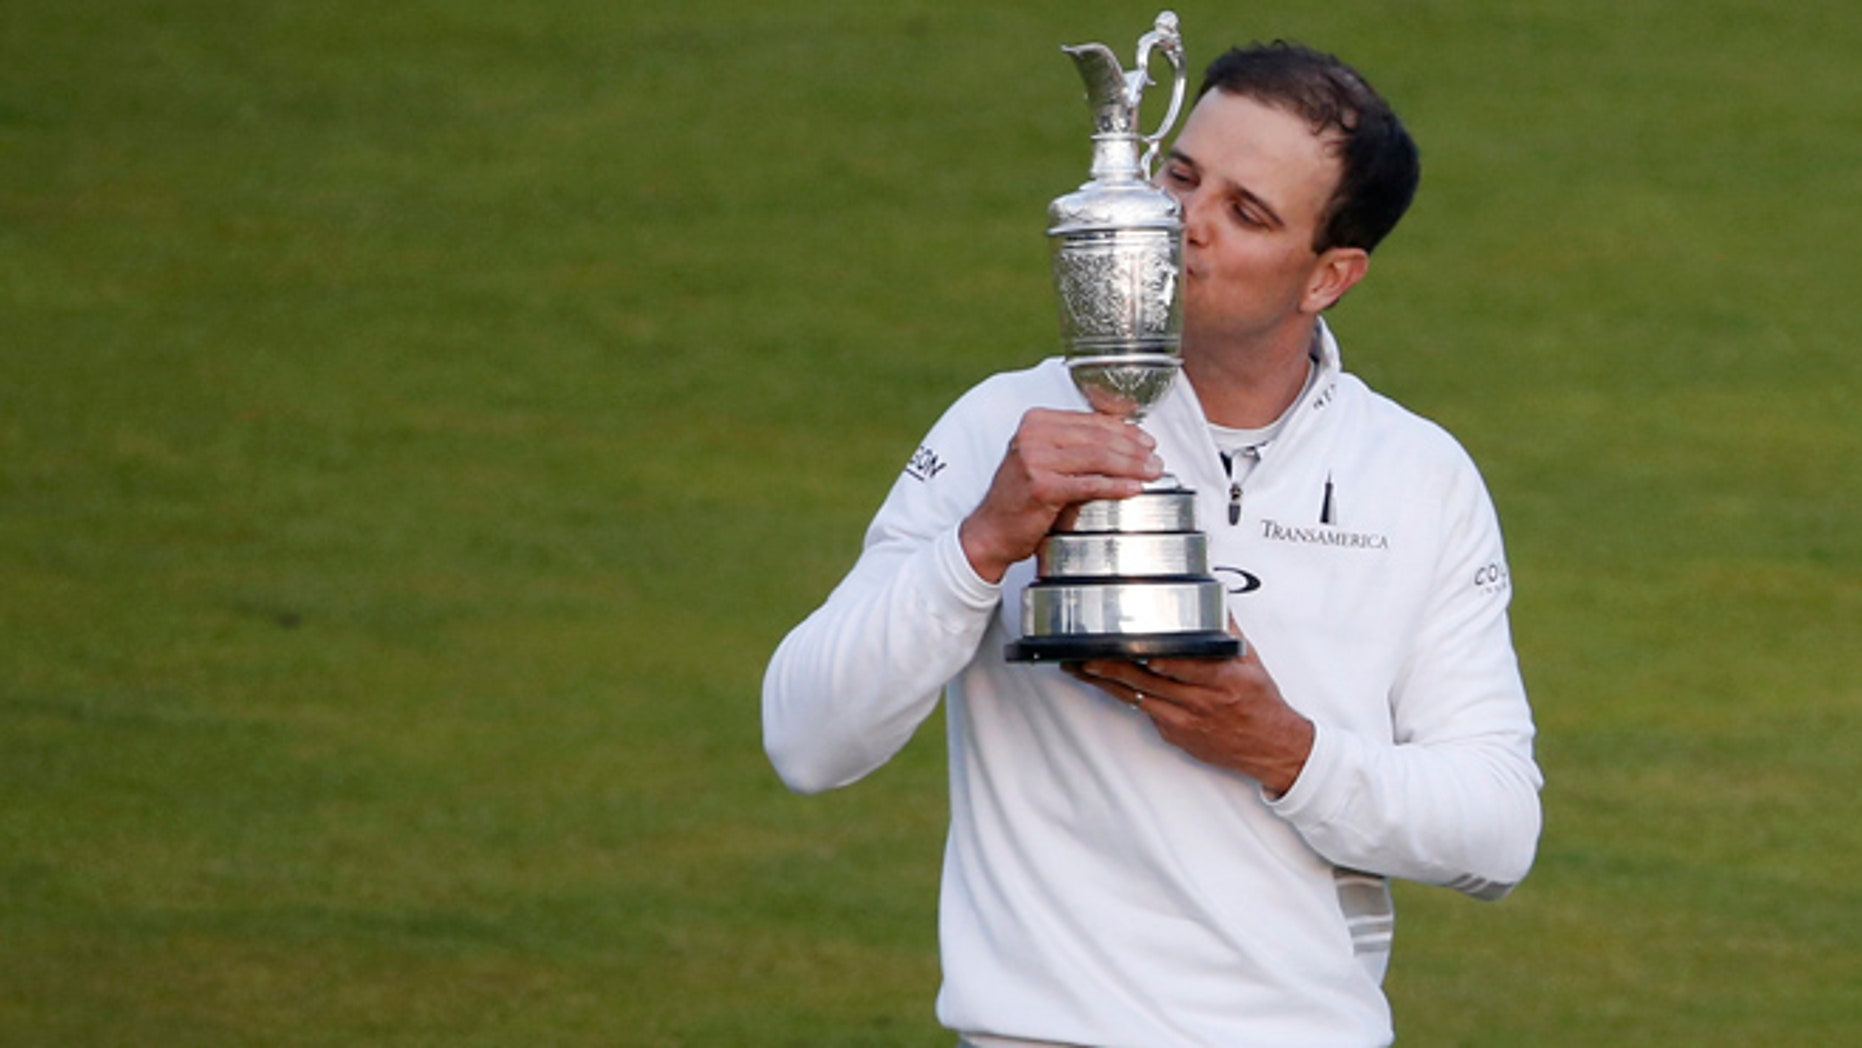 July 20, 20115: United States Zach Johnson kisses the trophy as he poses for photographers after winning a playoff after the final round at the British Open Golf Championship at the Old Course, St. Andrews, Scotland.